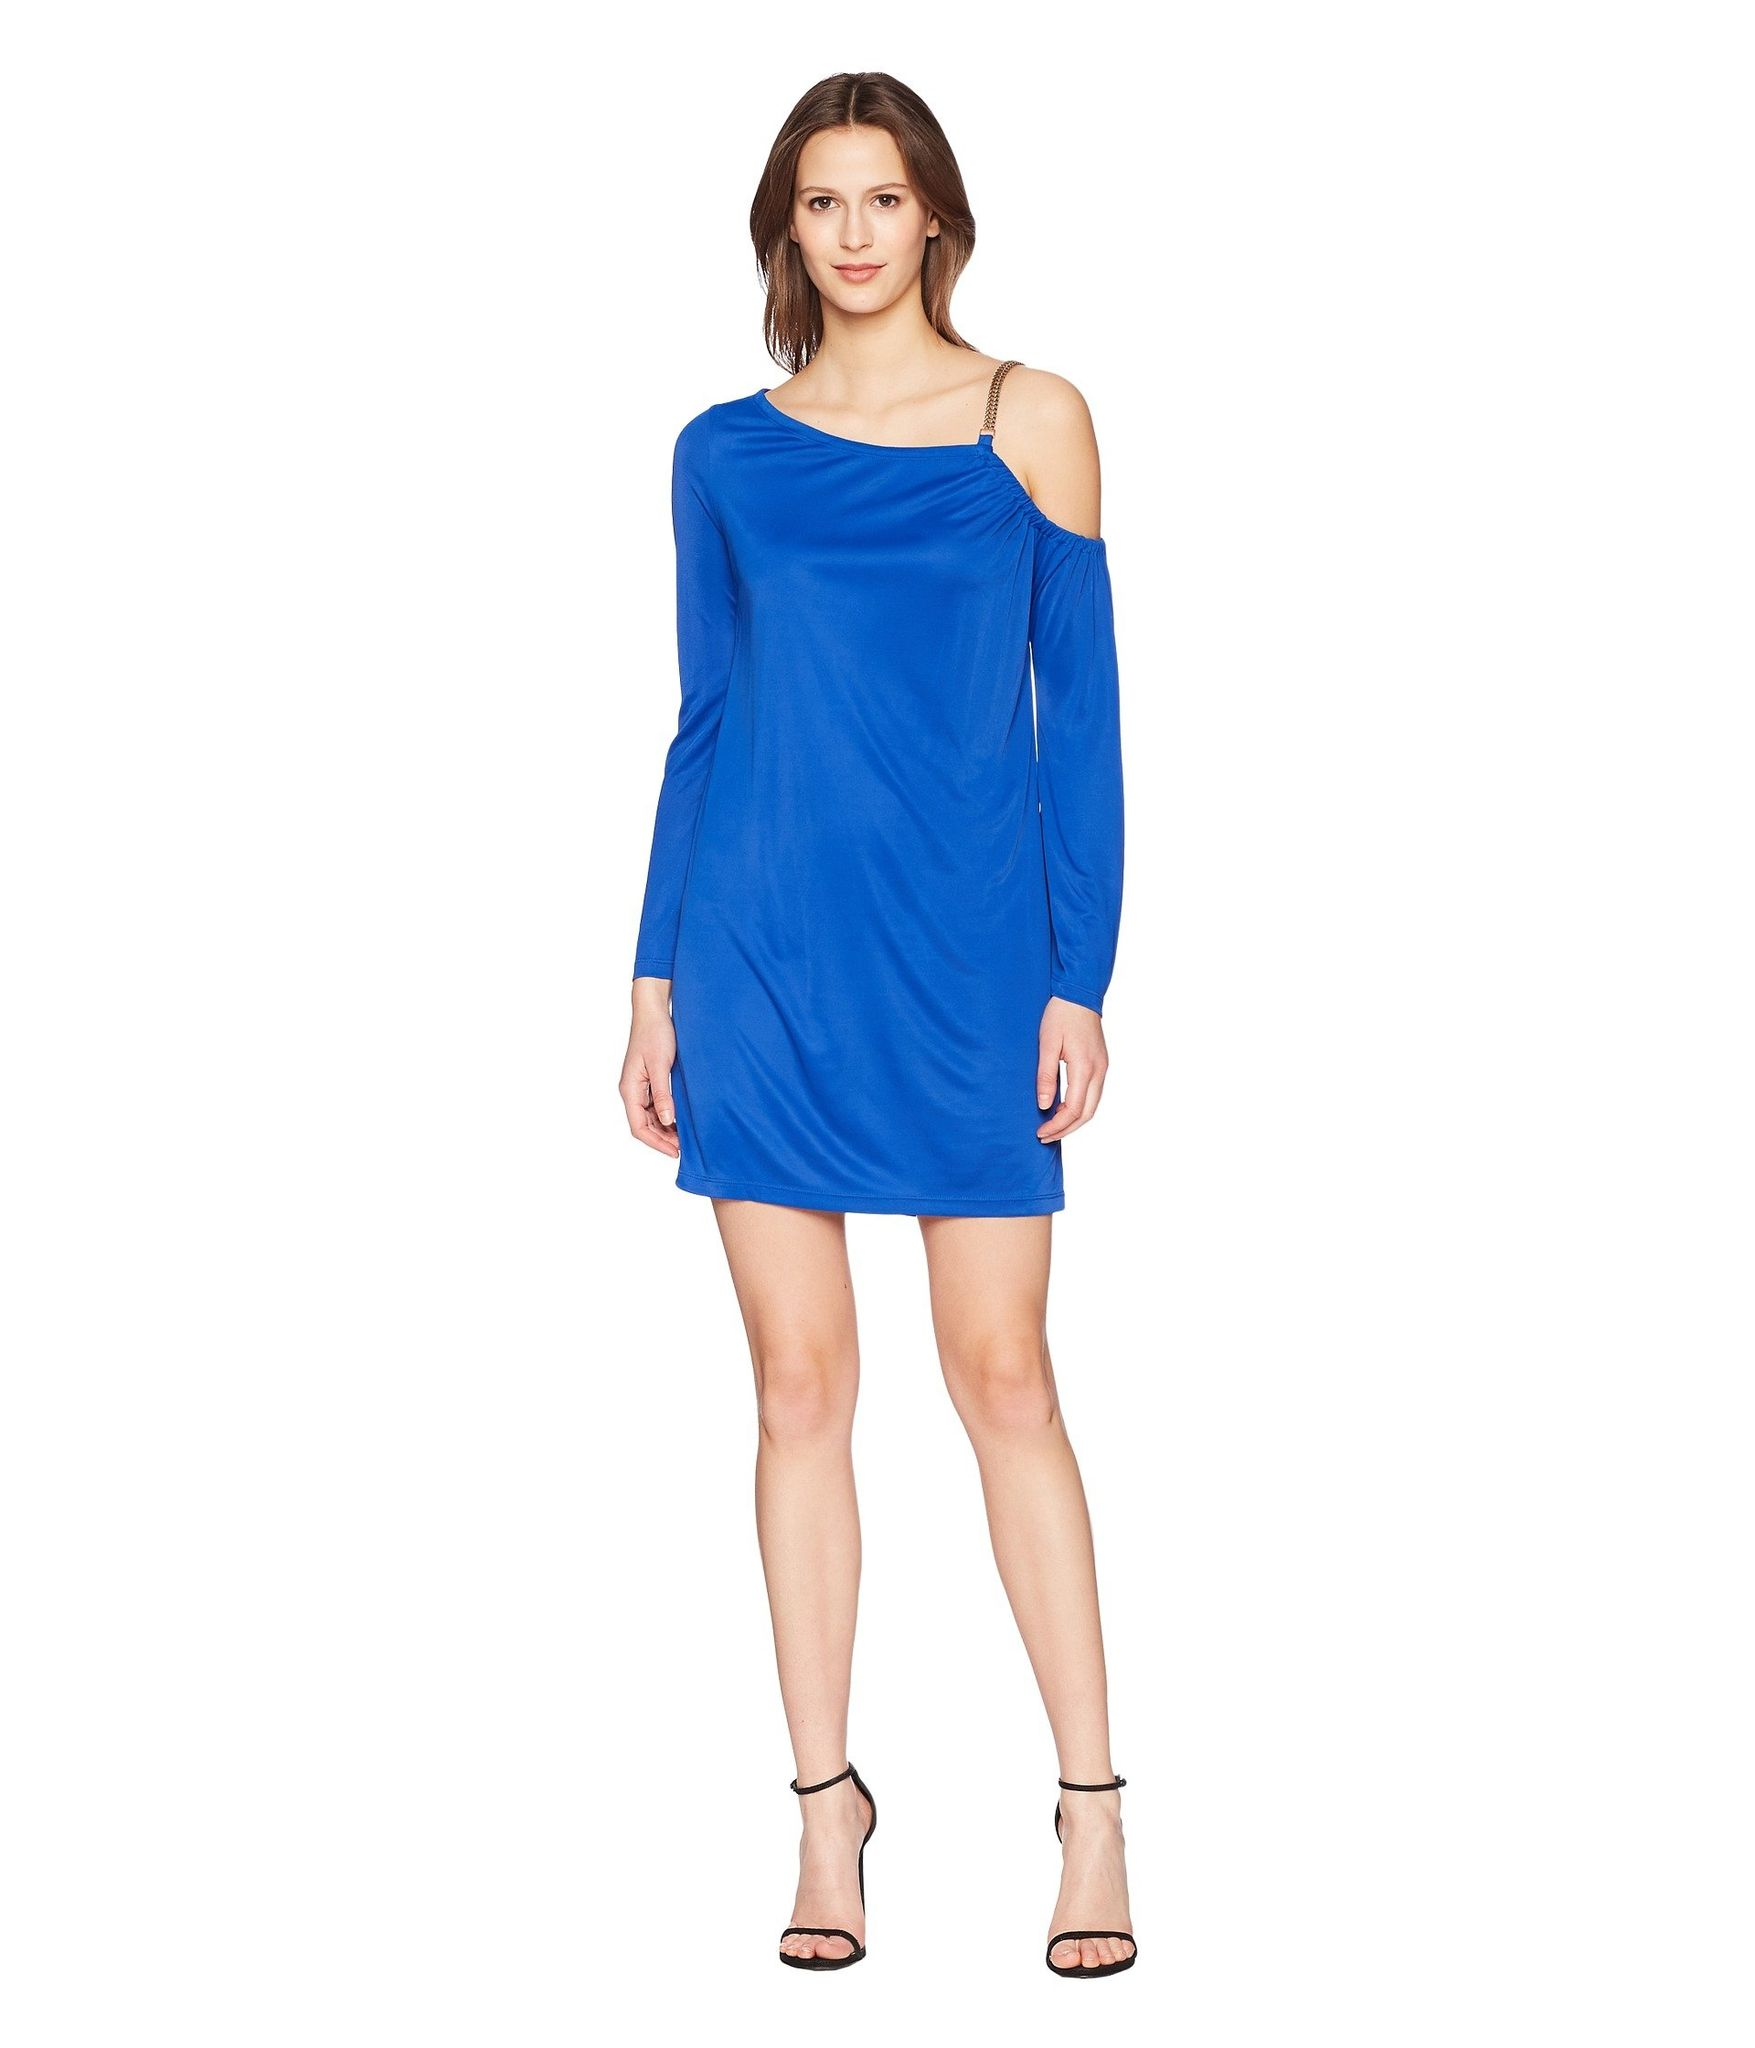 d30a8c9db366 Versace Collection Abito Donna Chain Strap Dress